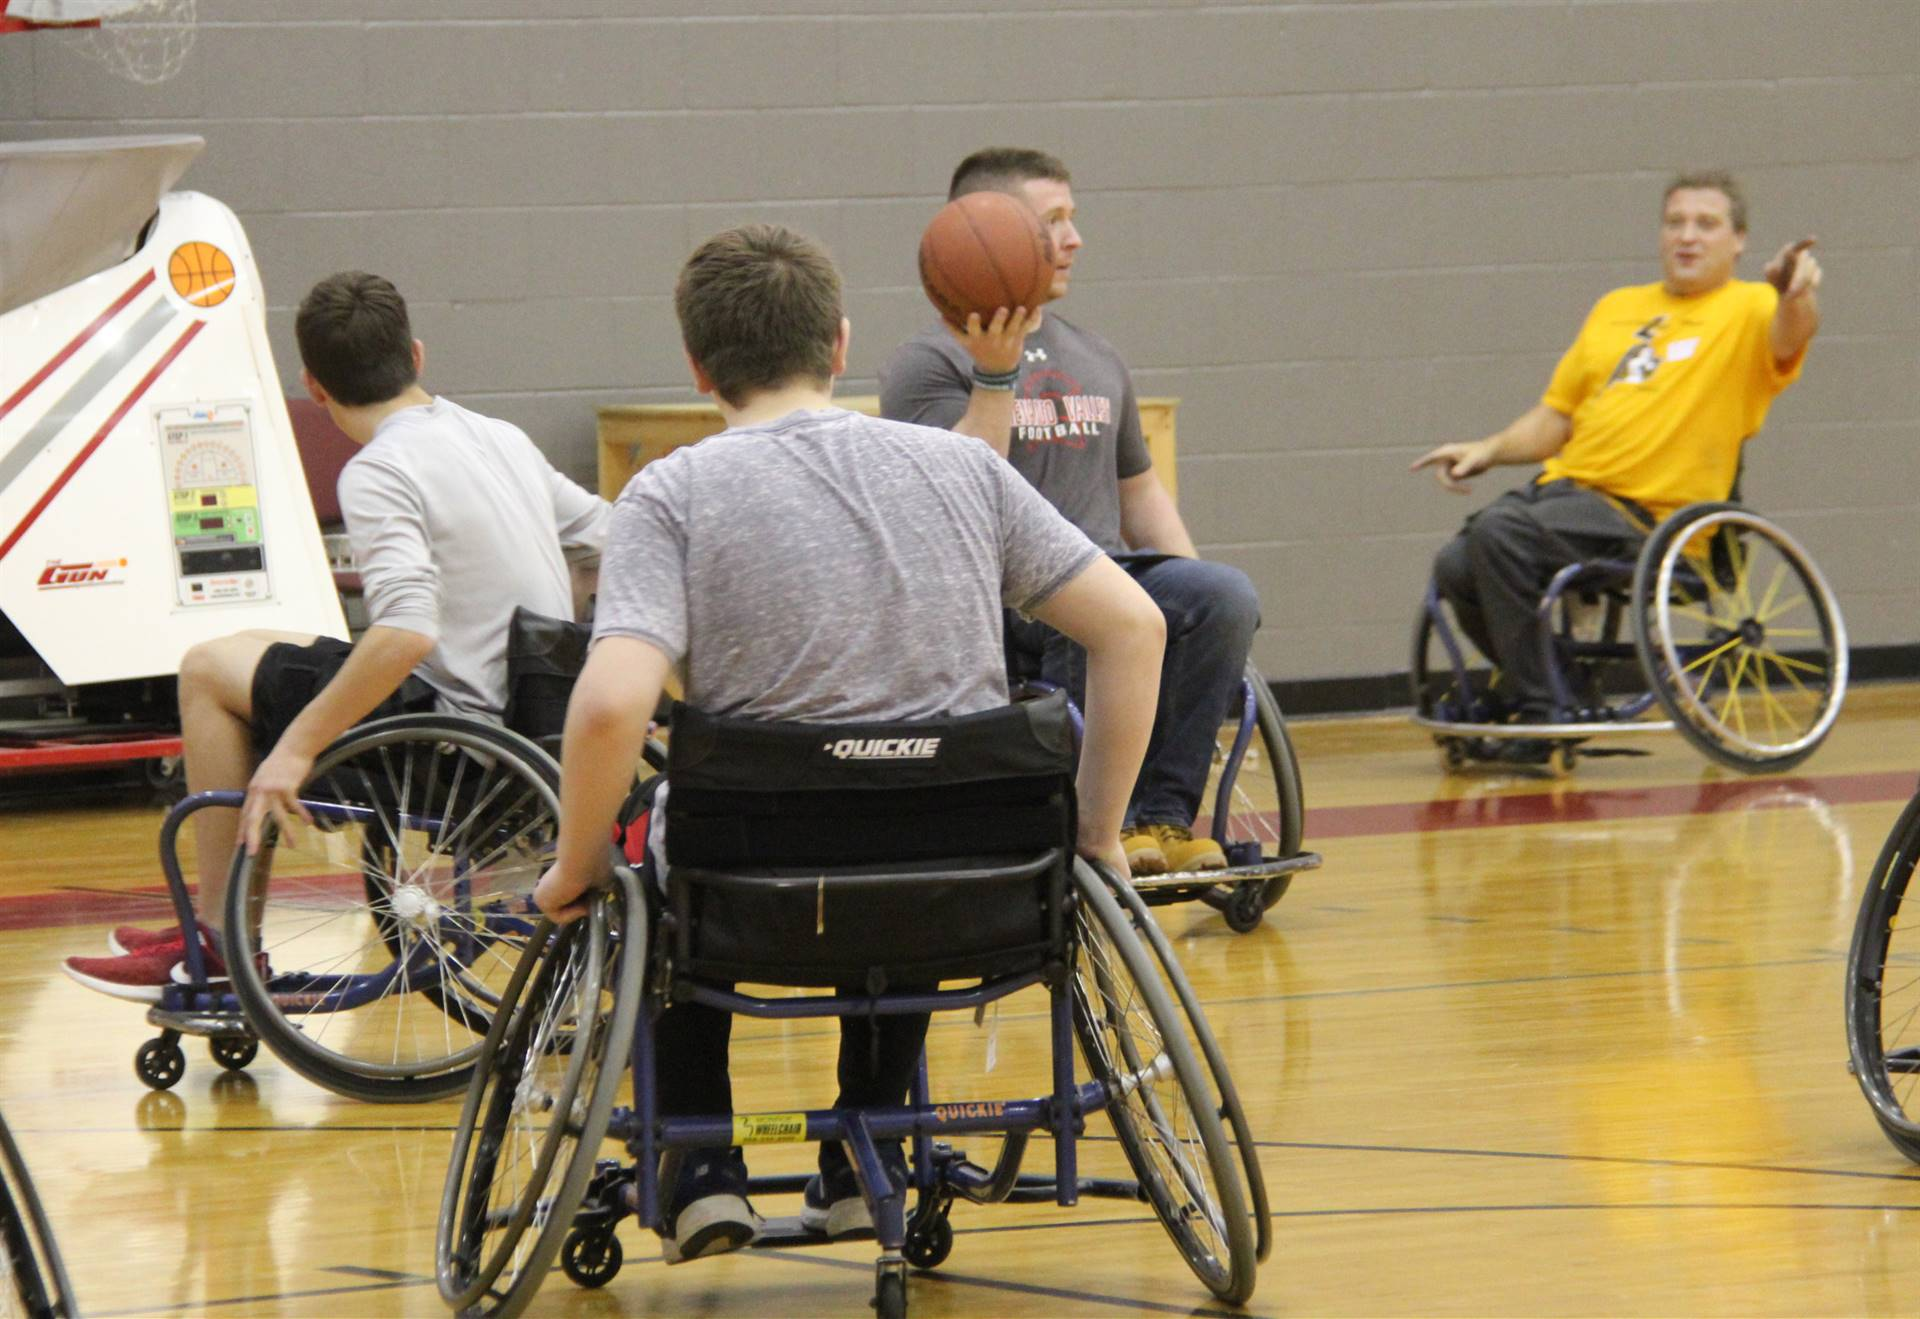 teachers students and instructor taking part in wheelchair basketball